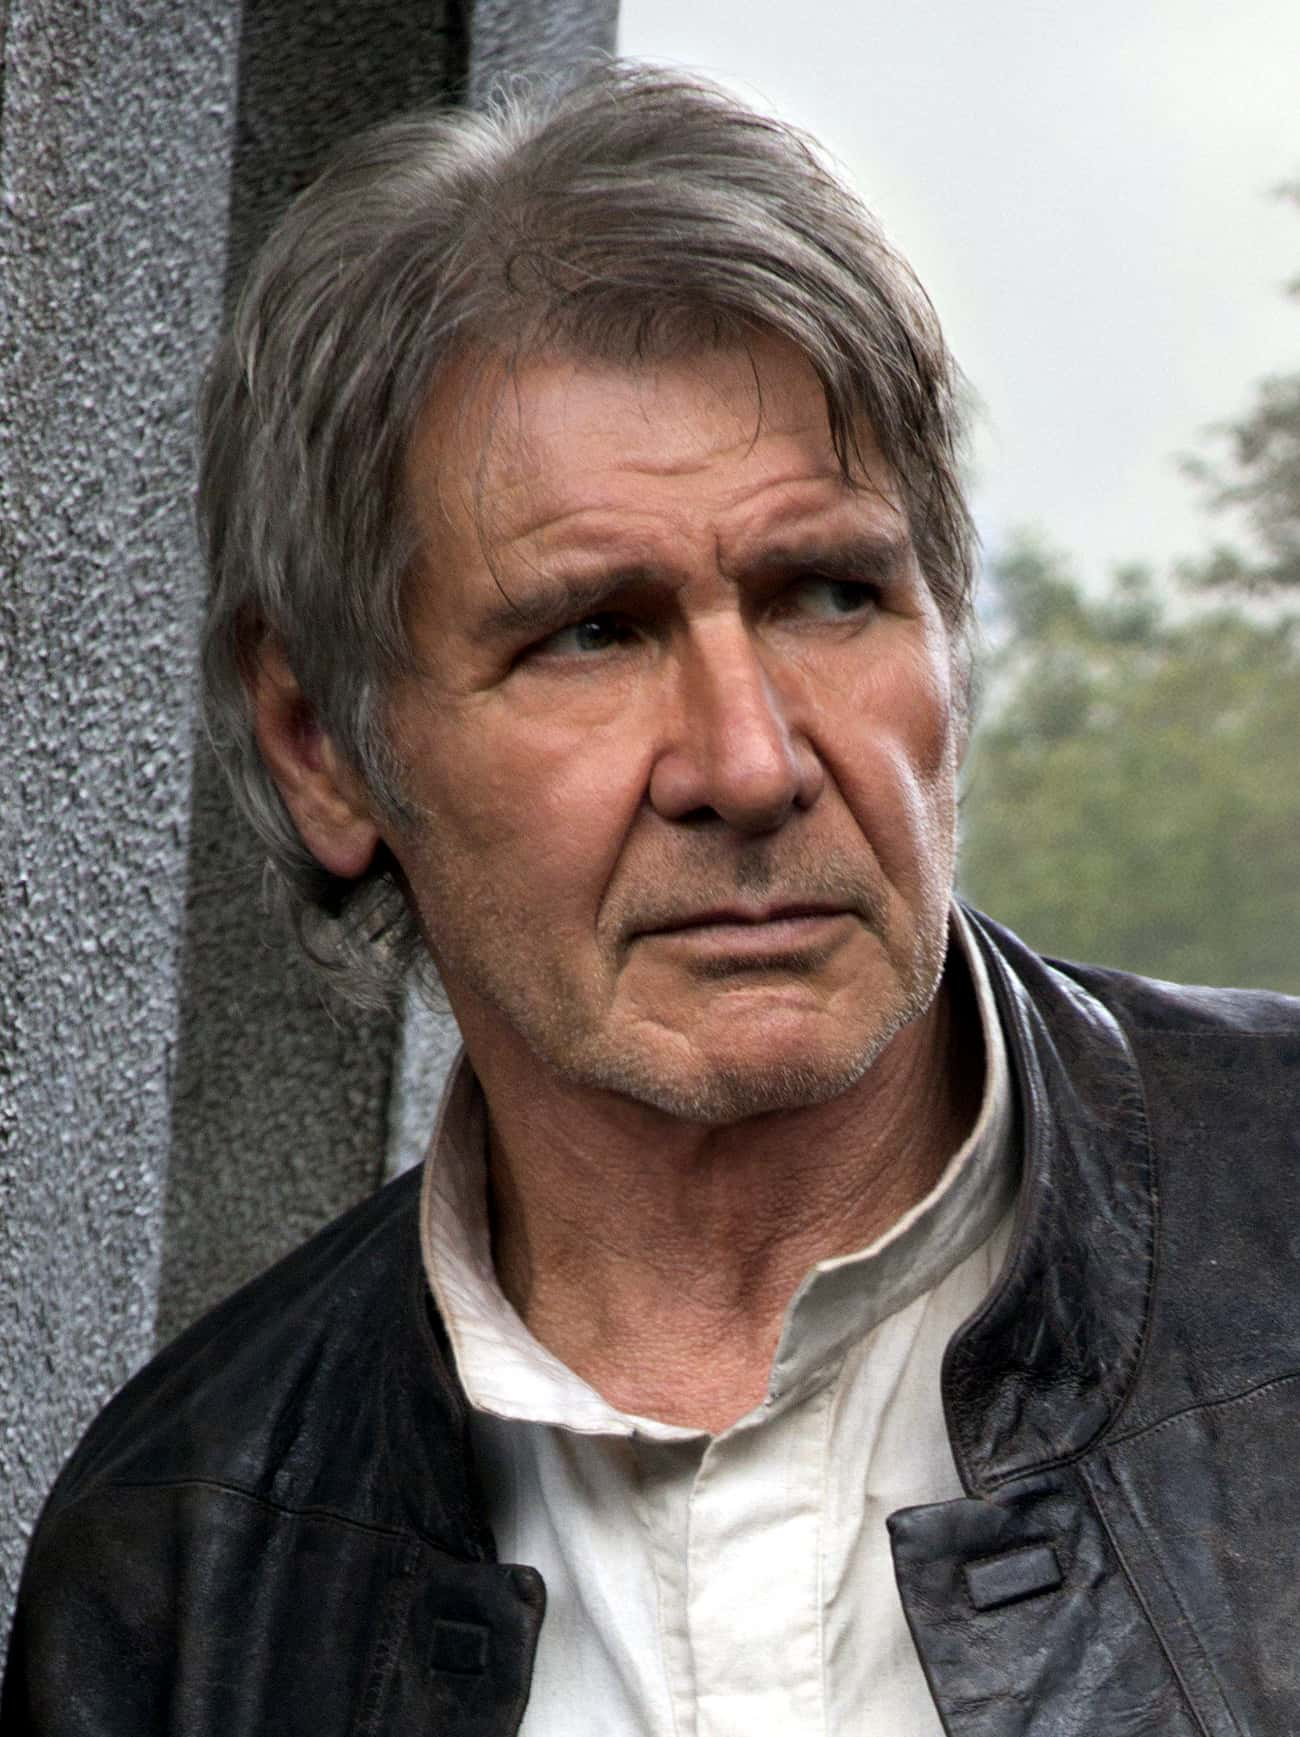 Harrison Ford Has Wanted Han S is listed (or ranked) 2 on the list 10 Actors Who Actually Requested To Have Their Characters Written Out Of Popular Franchises